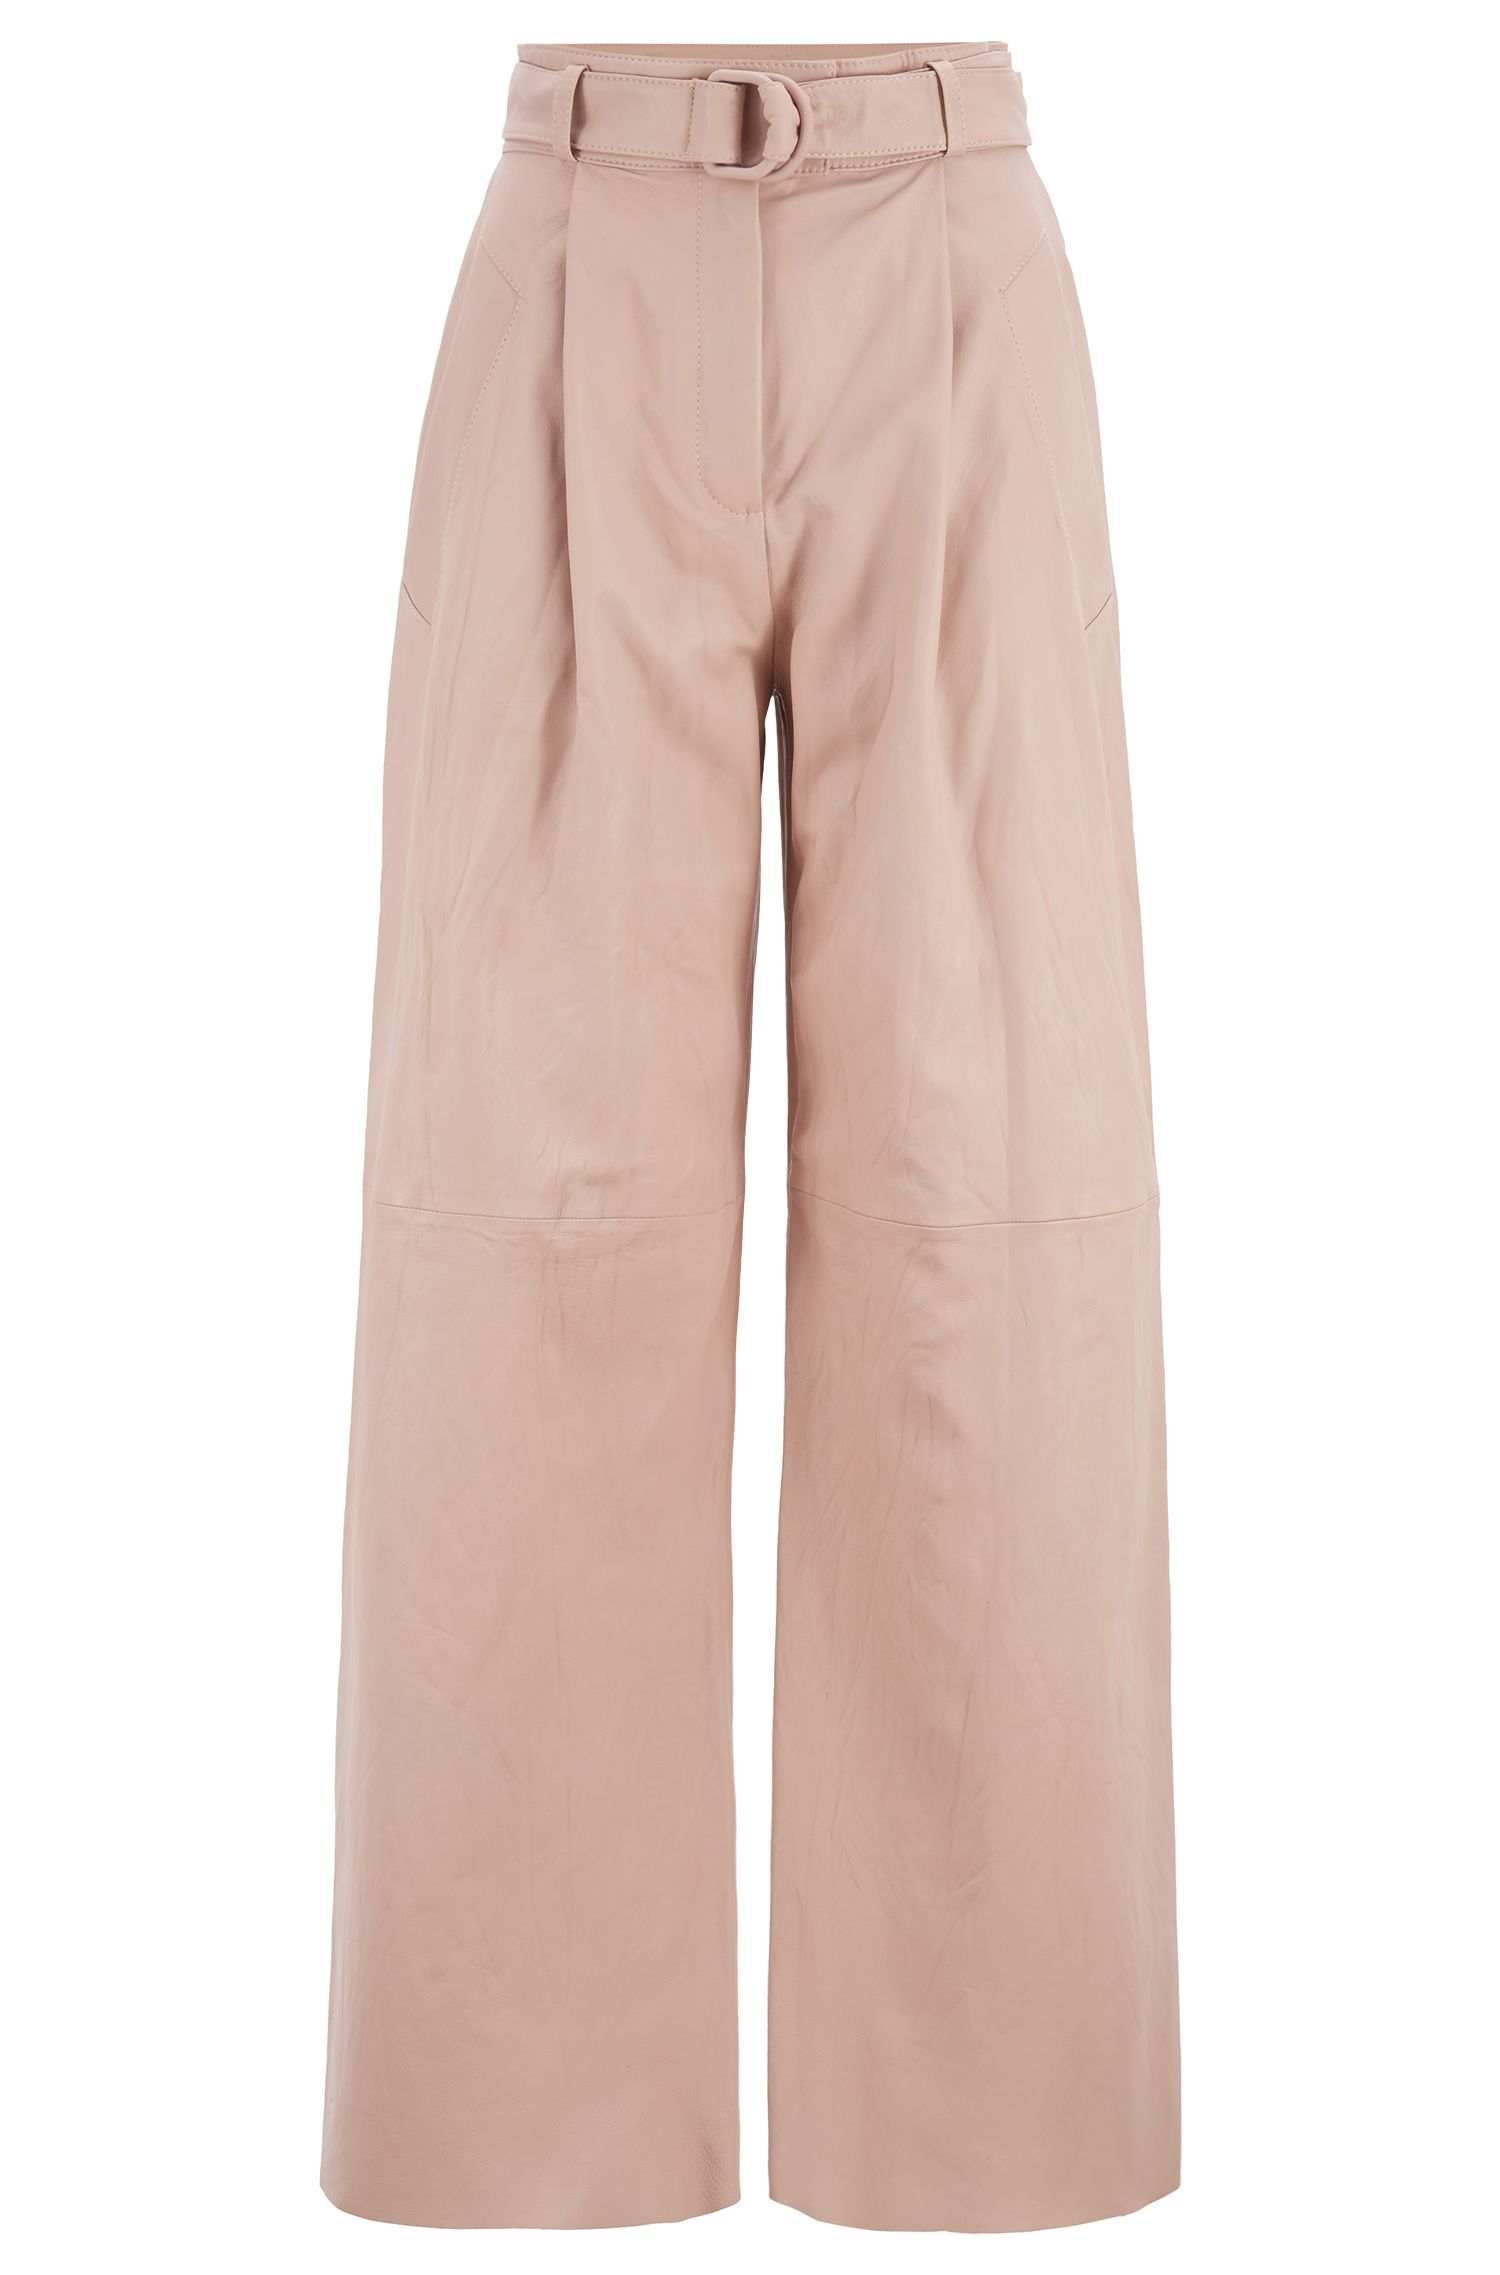 Fashion Show relaxed-fit long-length pants in nappa leather, light pink